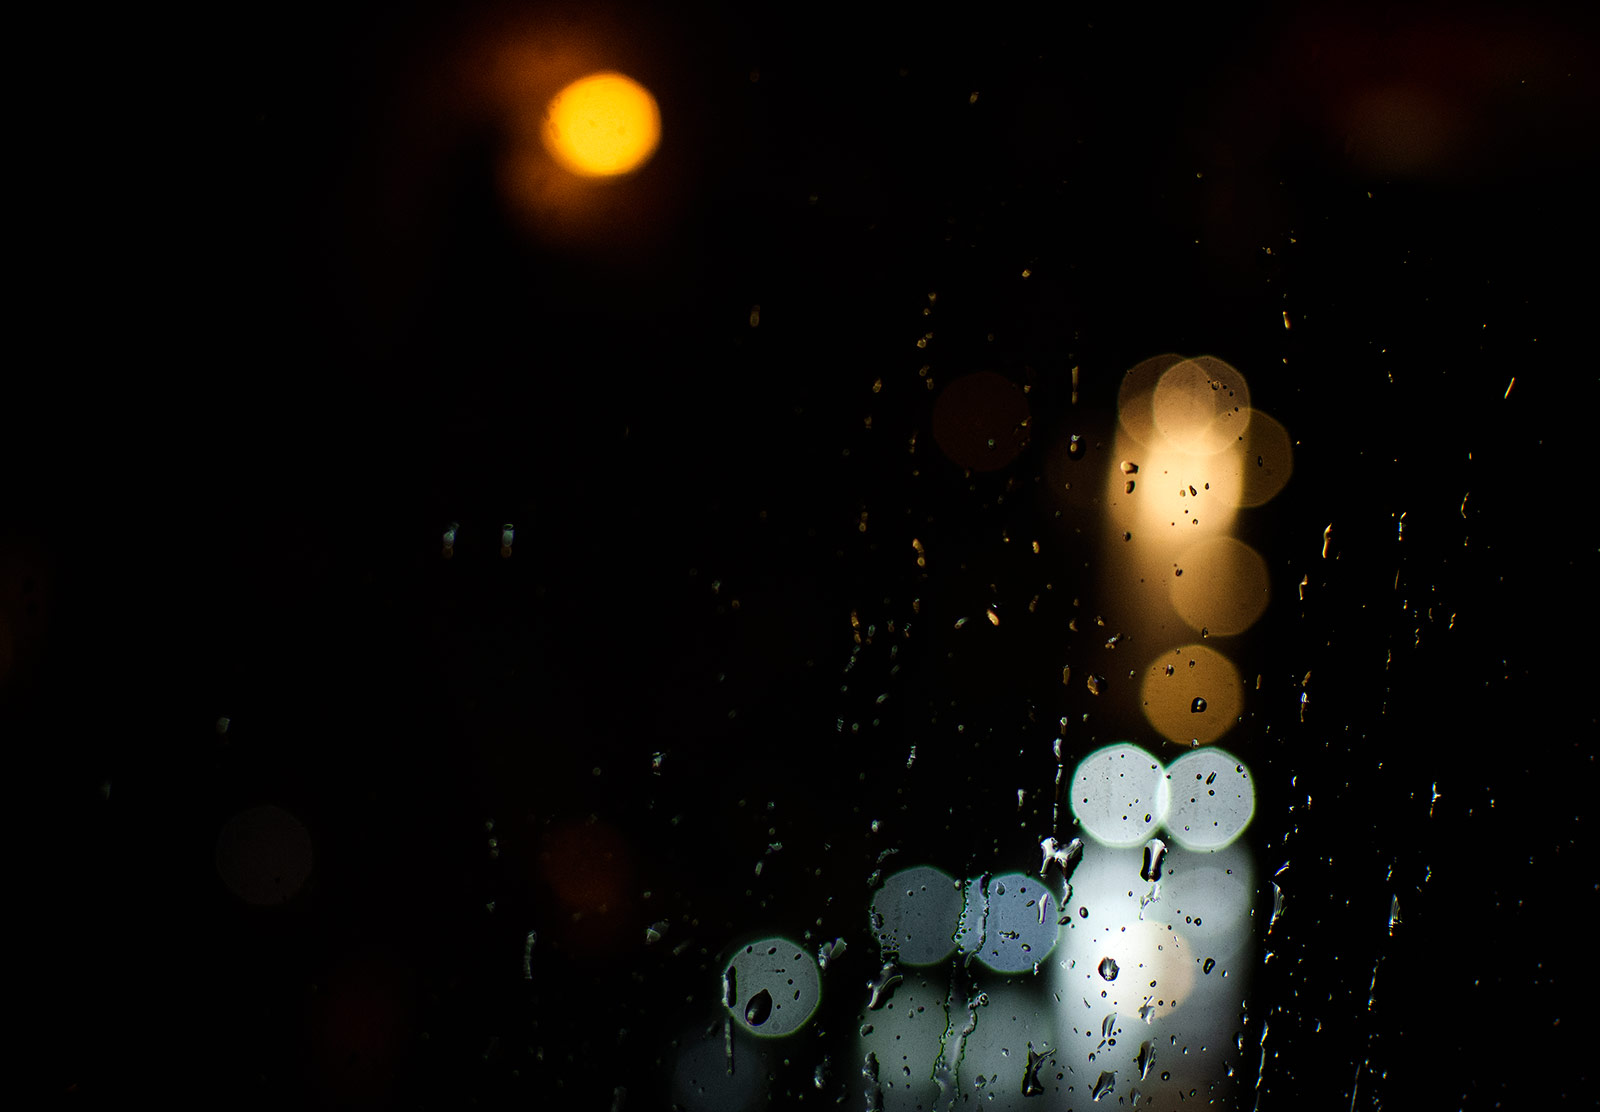 Lights through rain on window